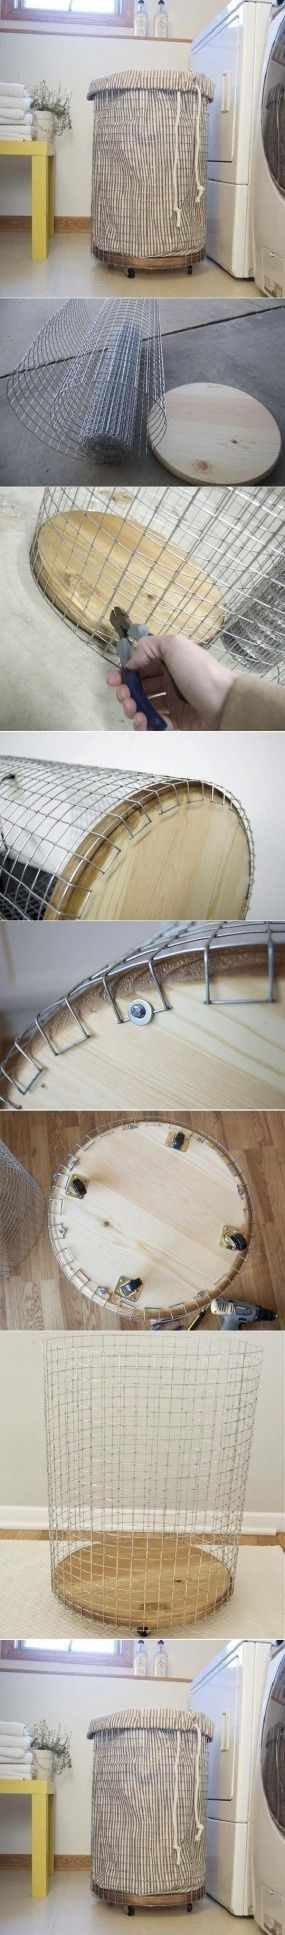 Looks cool!..I may need to make a few of these to replace the baskets we seem to keep breaking.